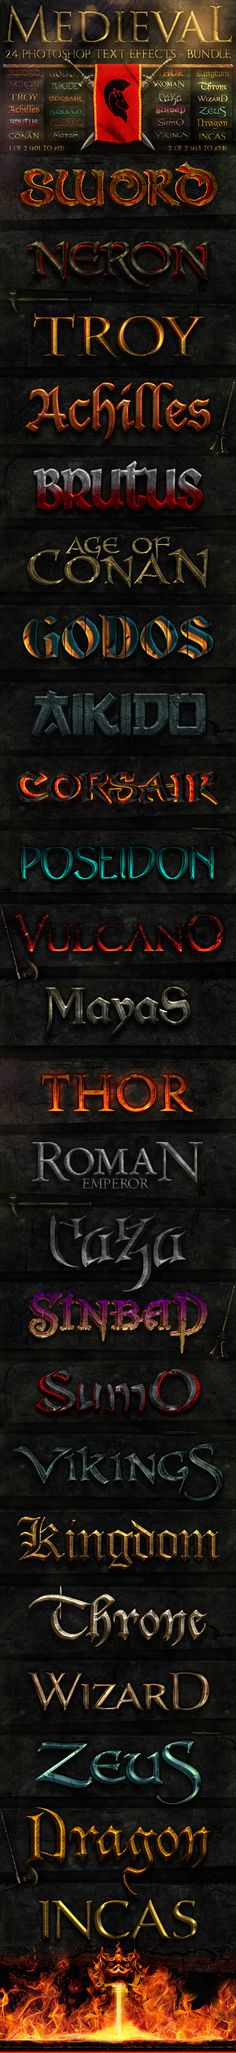 Medieval Photoshop Text Effects [BUNDLE] - Text Effects Styles